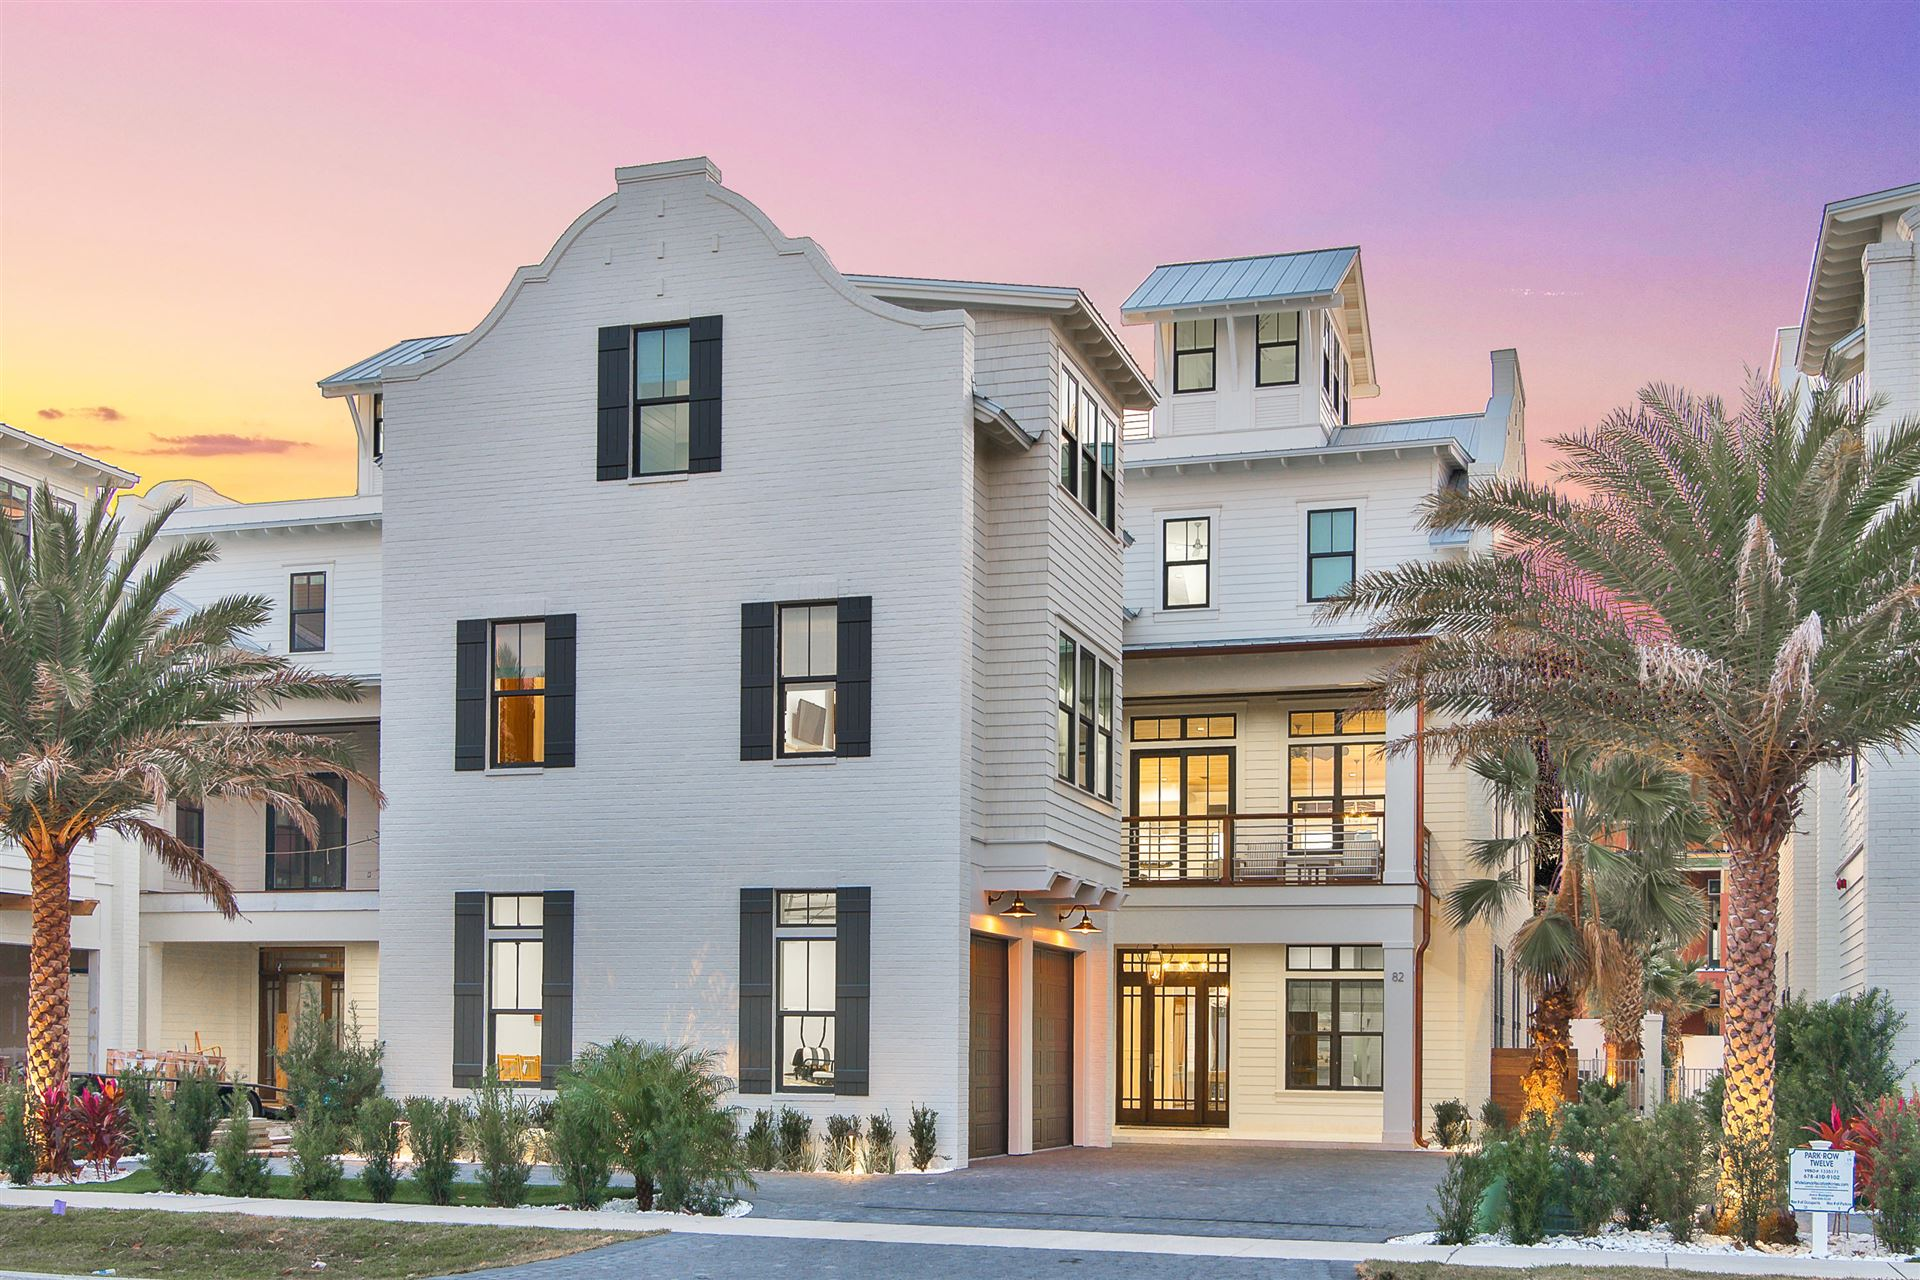 Property Image Of 82 Hutchinson Street In Destin, Fl